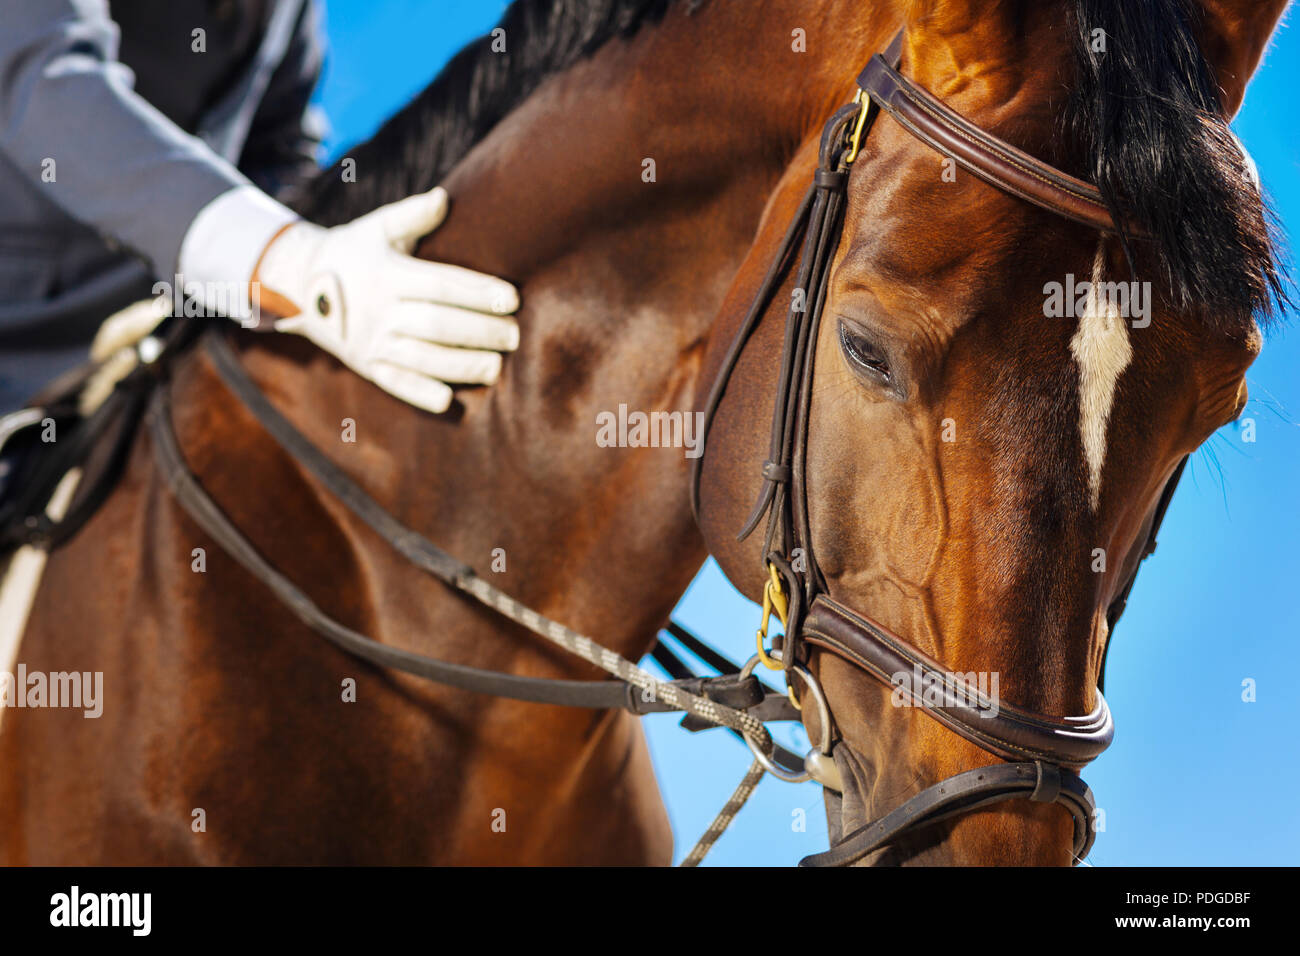 Race horse with white spot on his head standing submissively - Stock Image